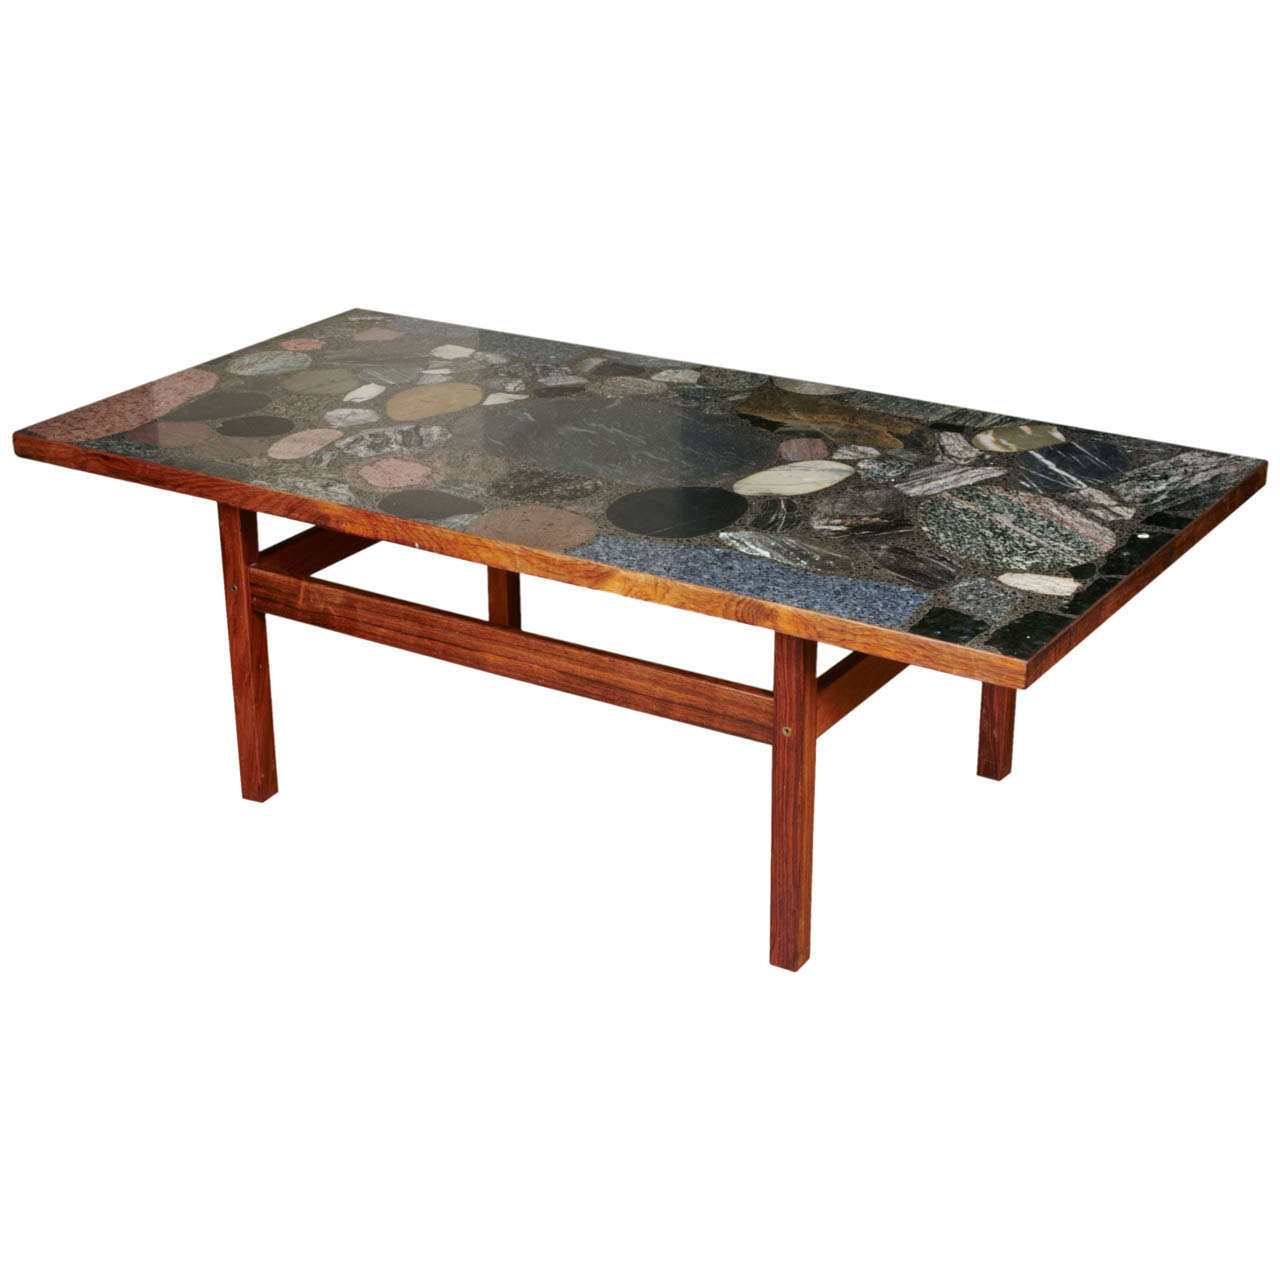 Danish coffee table with inlay of granite and stones ca1960 at danish coffee table with inlay of granite and stones ca1960 1 geotapseo Choice Image